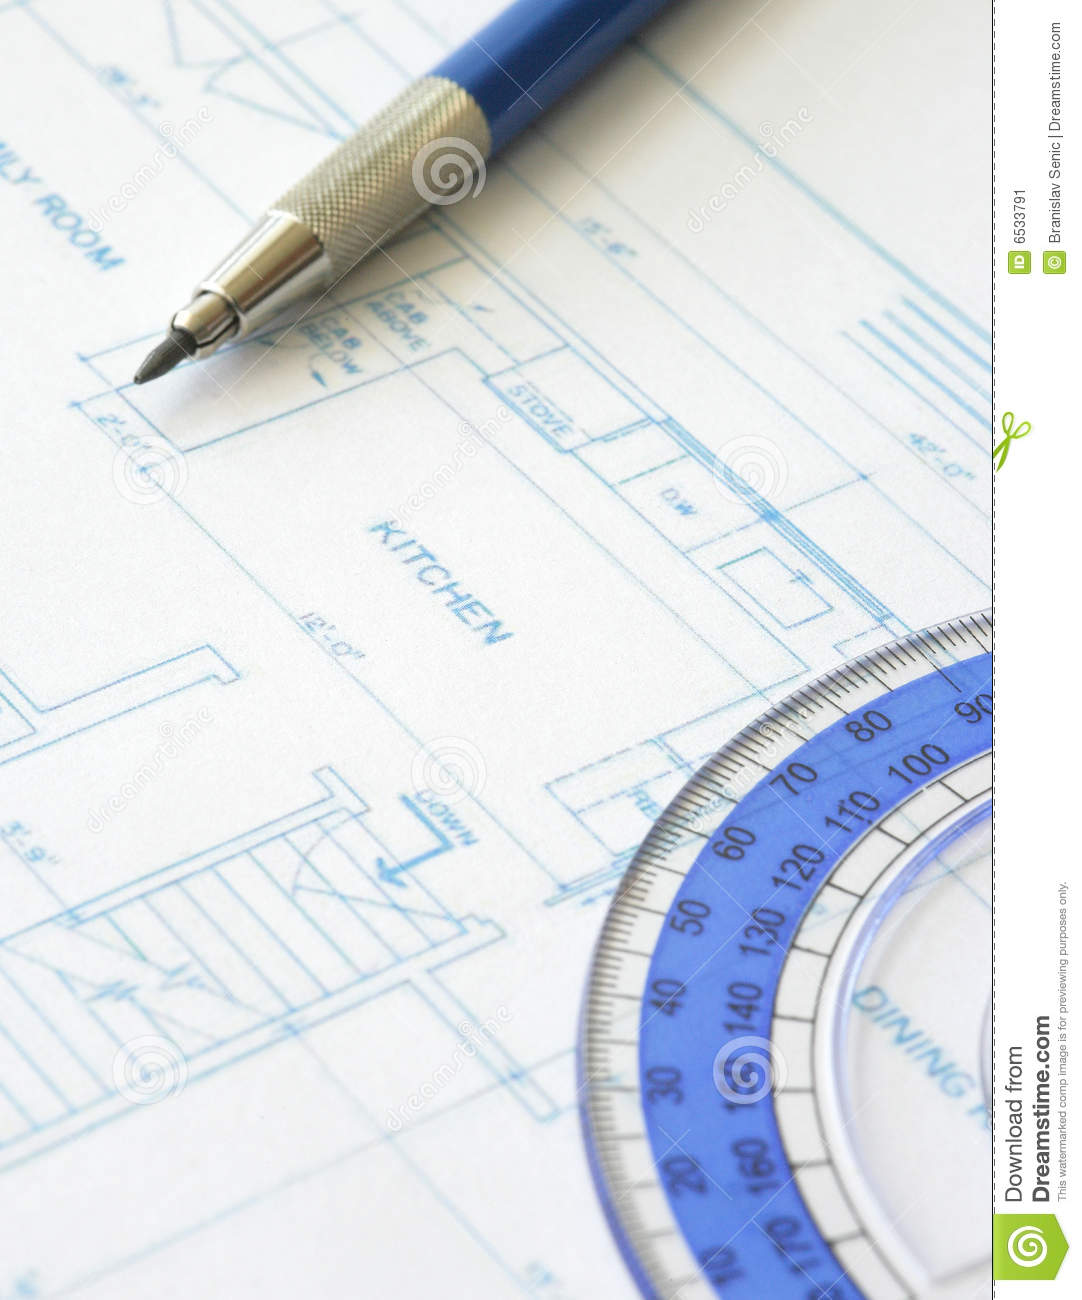 House plan blueprint architect design stock image for Architecture blueprint